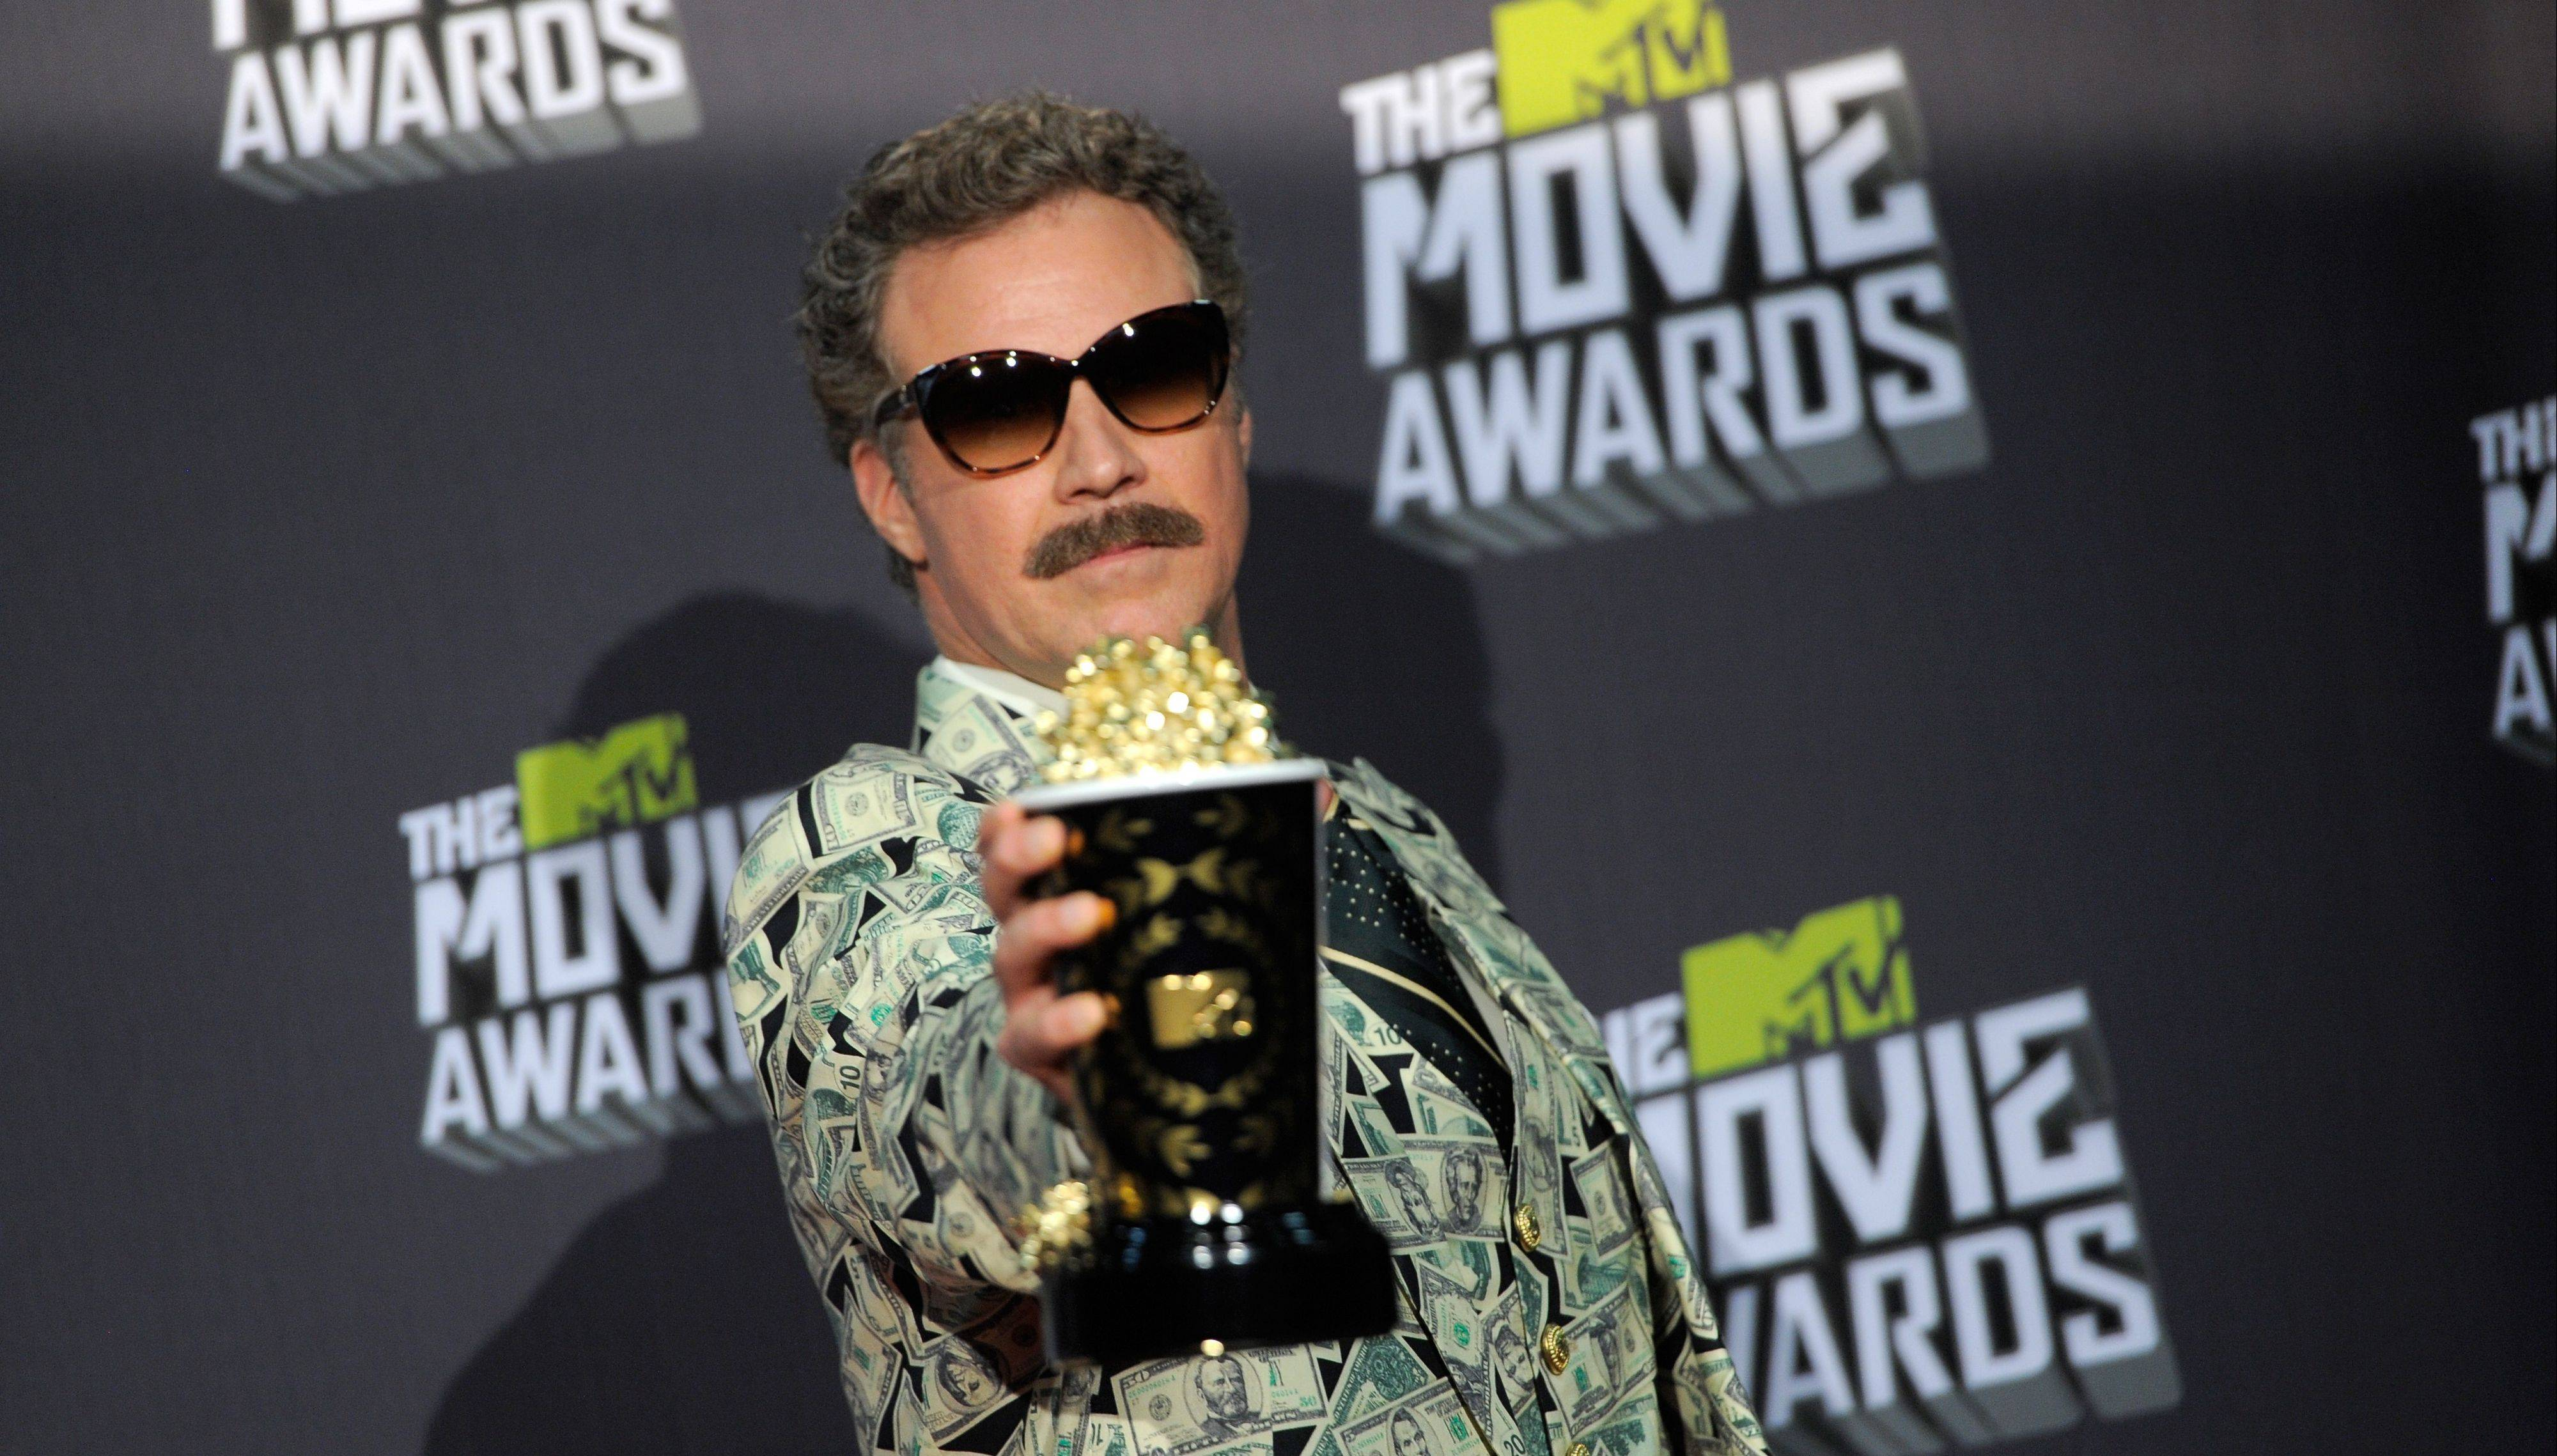 Will Ferrell poses with the comedic genius award backstage at the MTV Movie Awards in Sony Pictures Studio Lot in Culver City, Calif., on Sunday April 14, 2013.